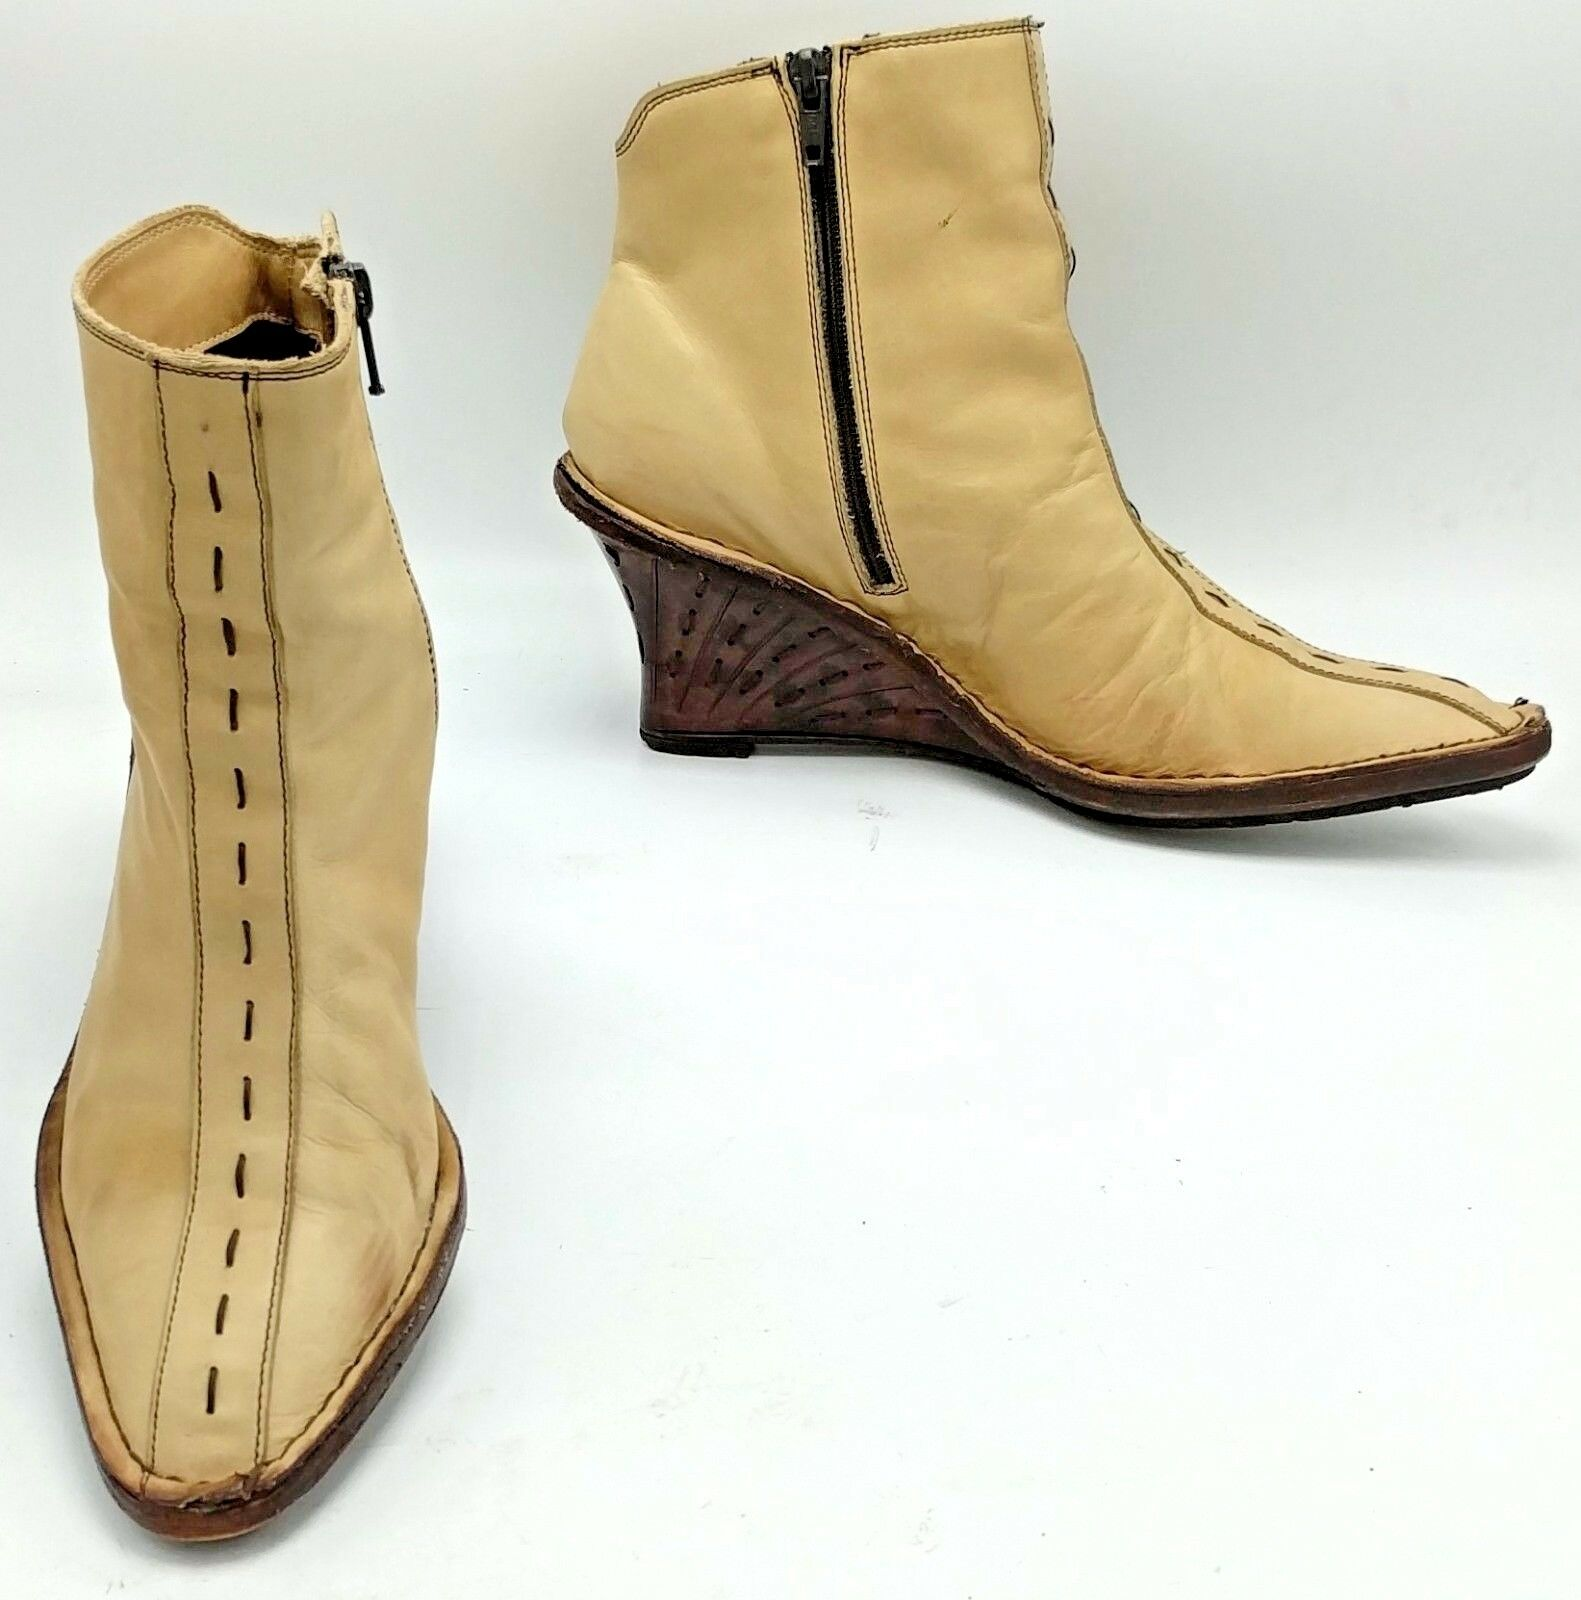 YOSUKE YAJIMA Neutral Leather Boots Wedge Womens Handmade Italy Ankle 38M